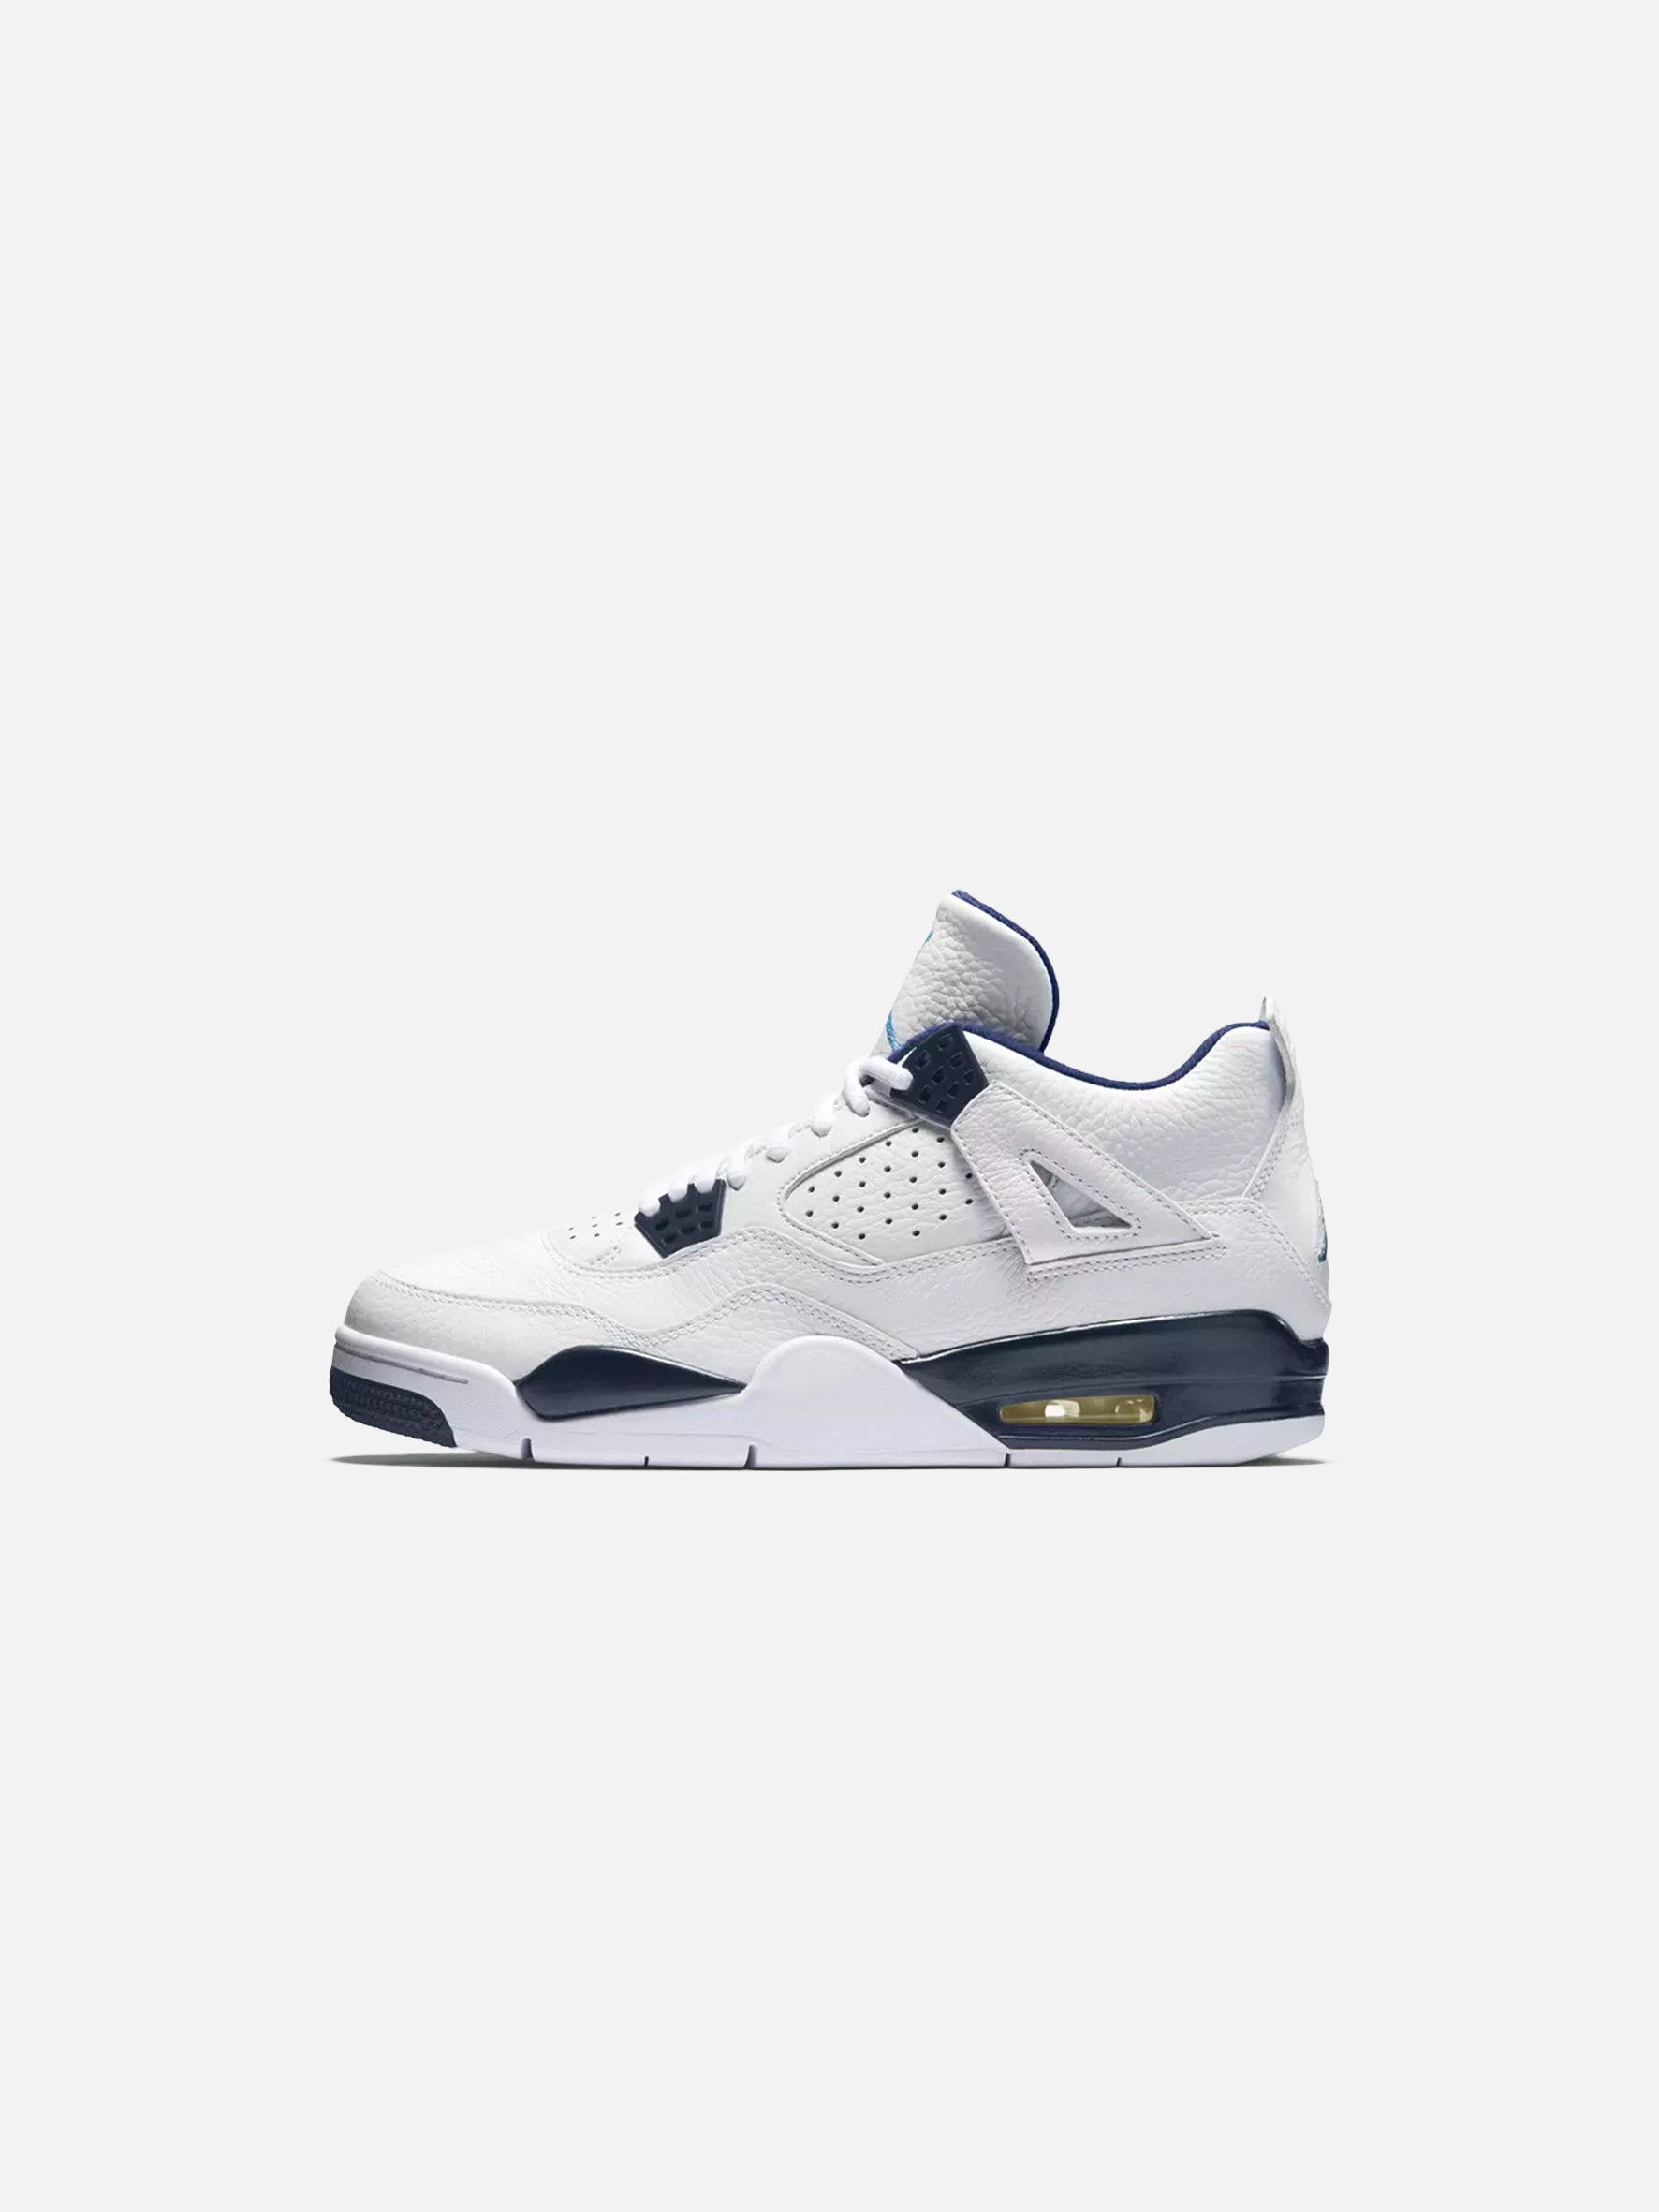 Nike Air Jordan IV Columbia Blue